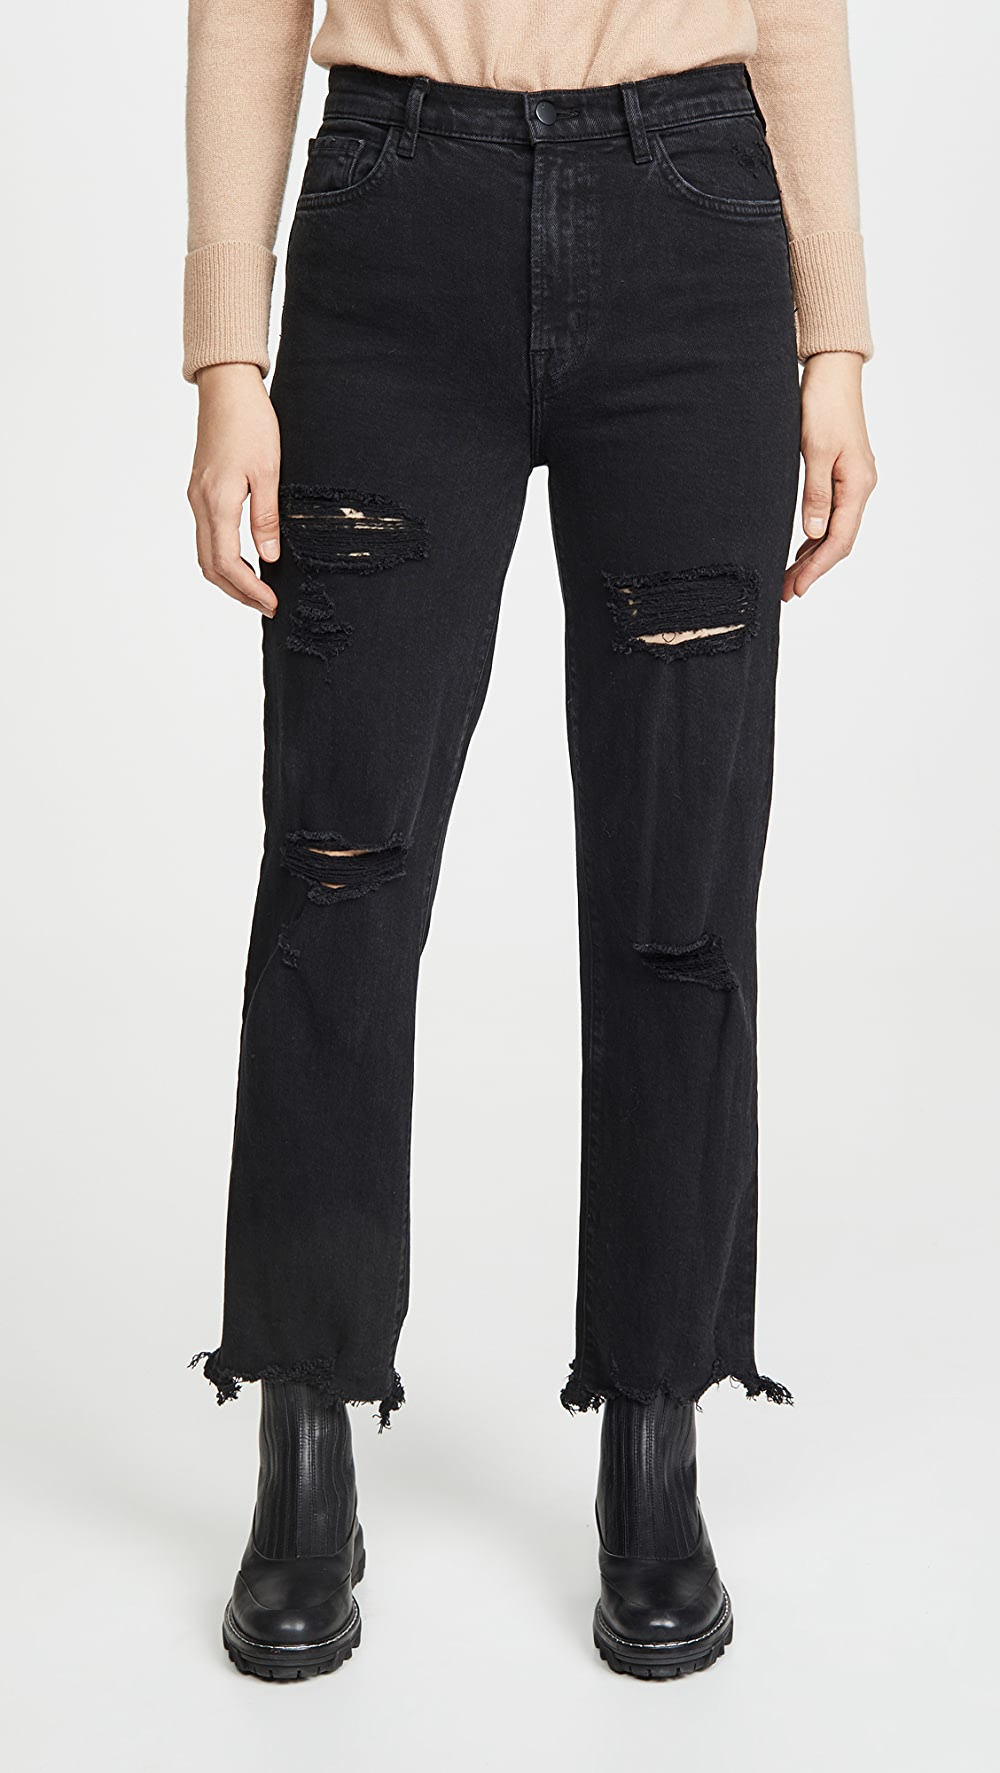 100% True J Brand - Jules High Rise Straight Jeans Carefully Selected Materials